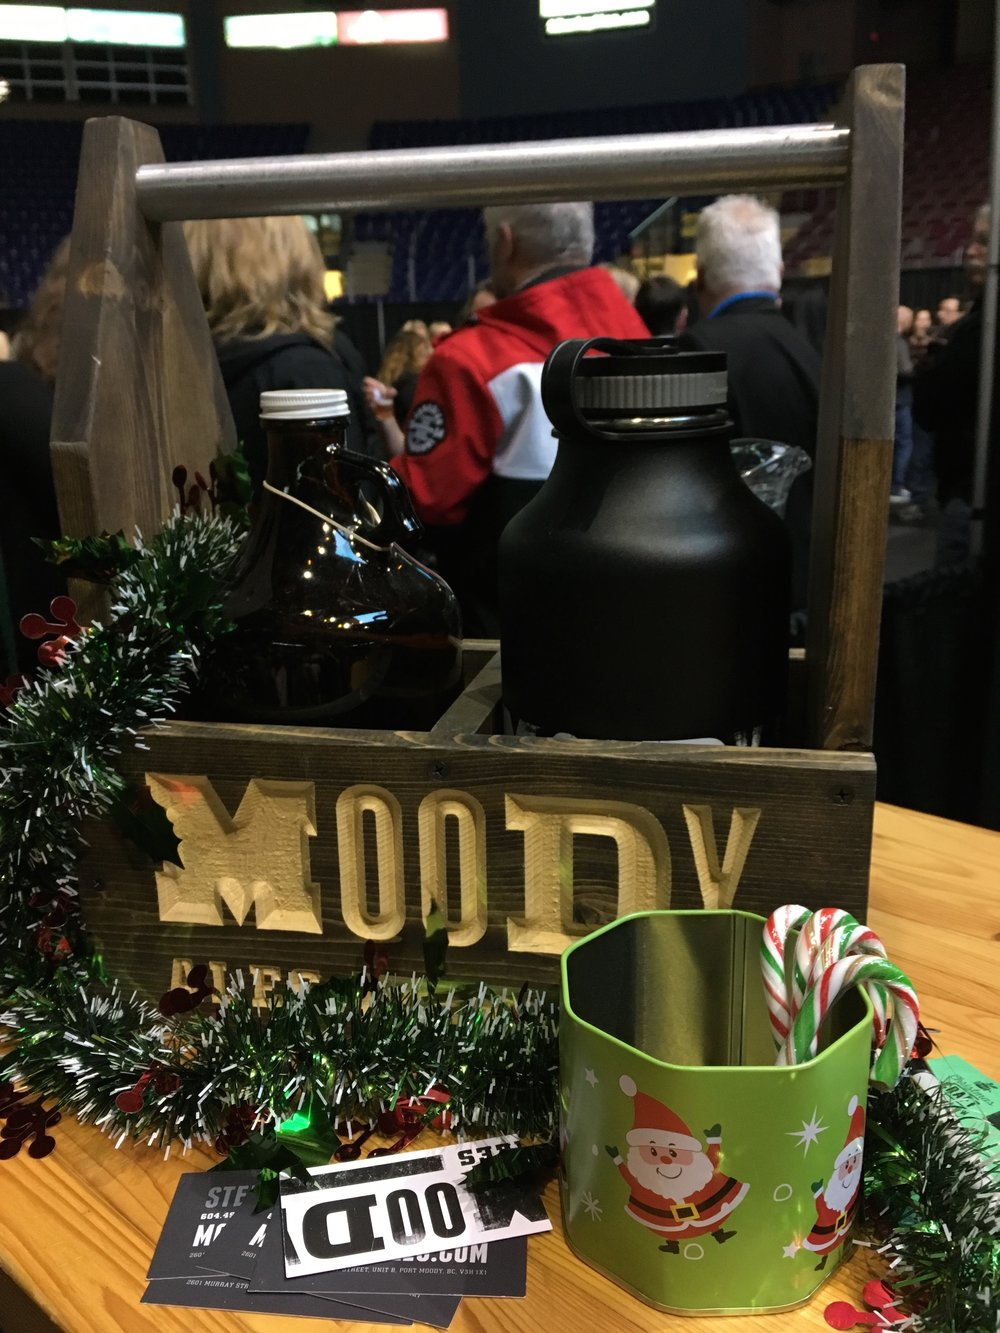 The  Moody Ales,  Port Moody, BC, stand at the Craft Beer Show.